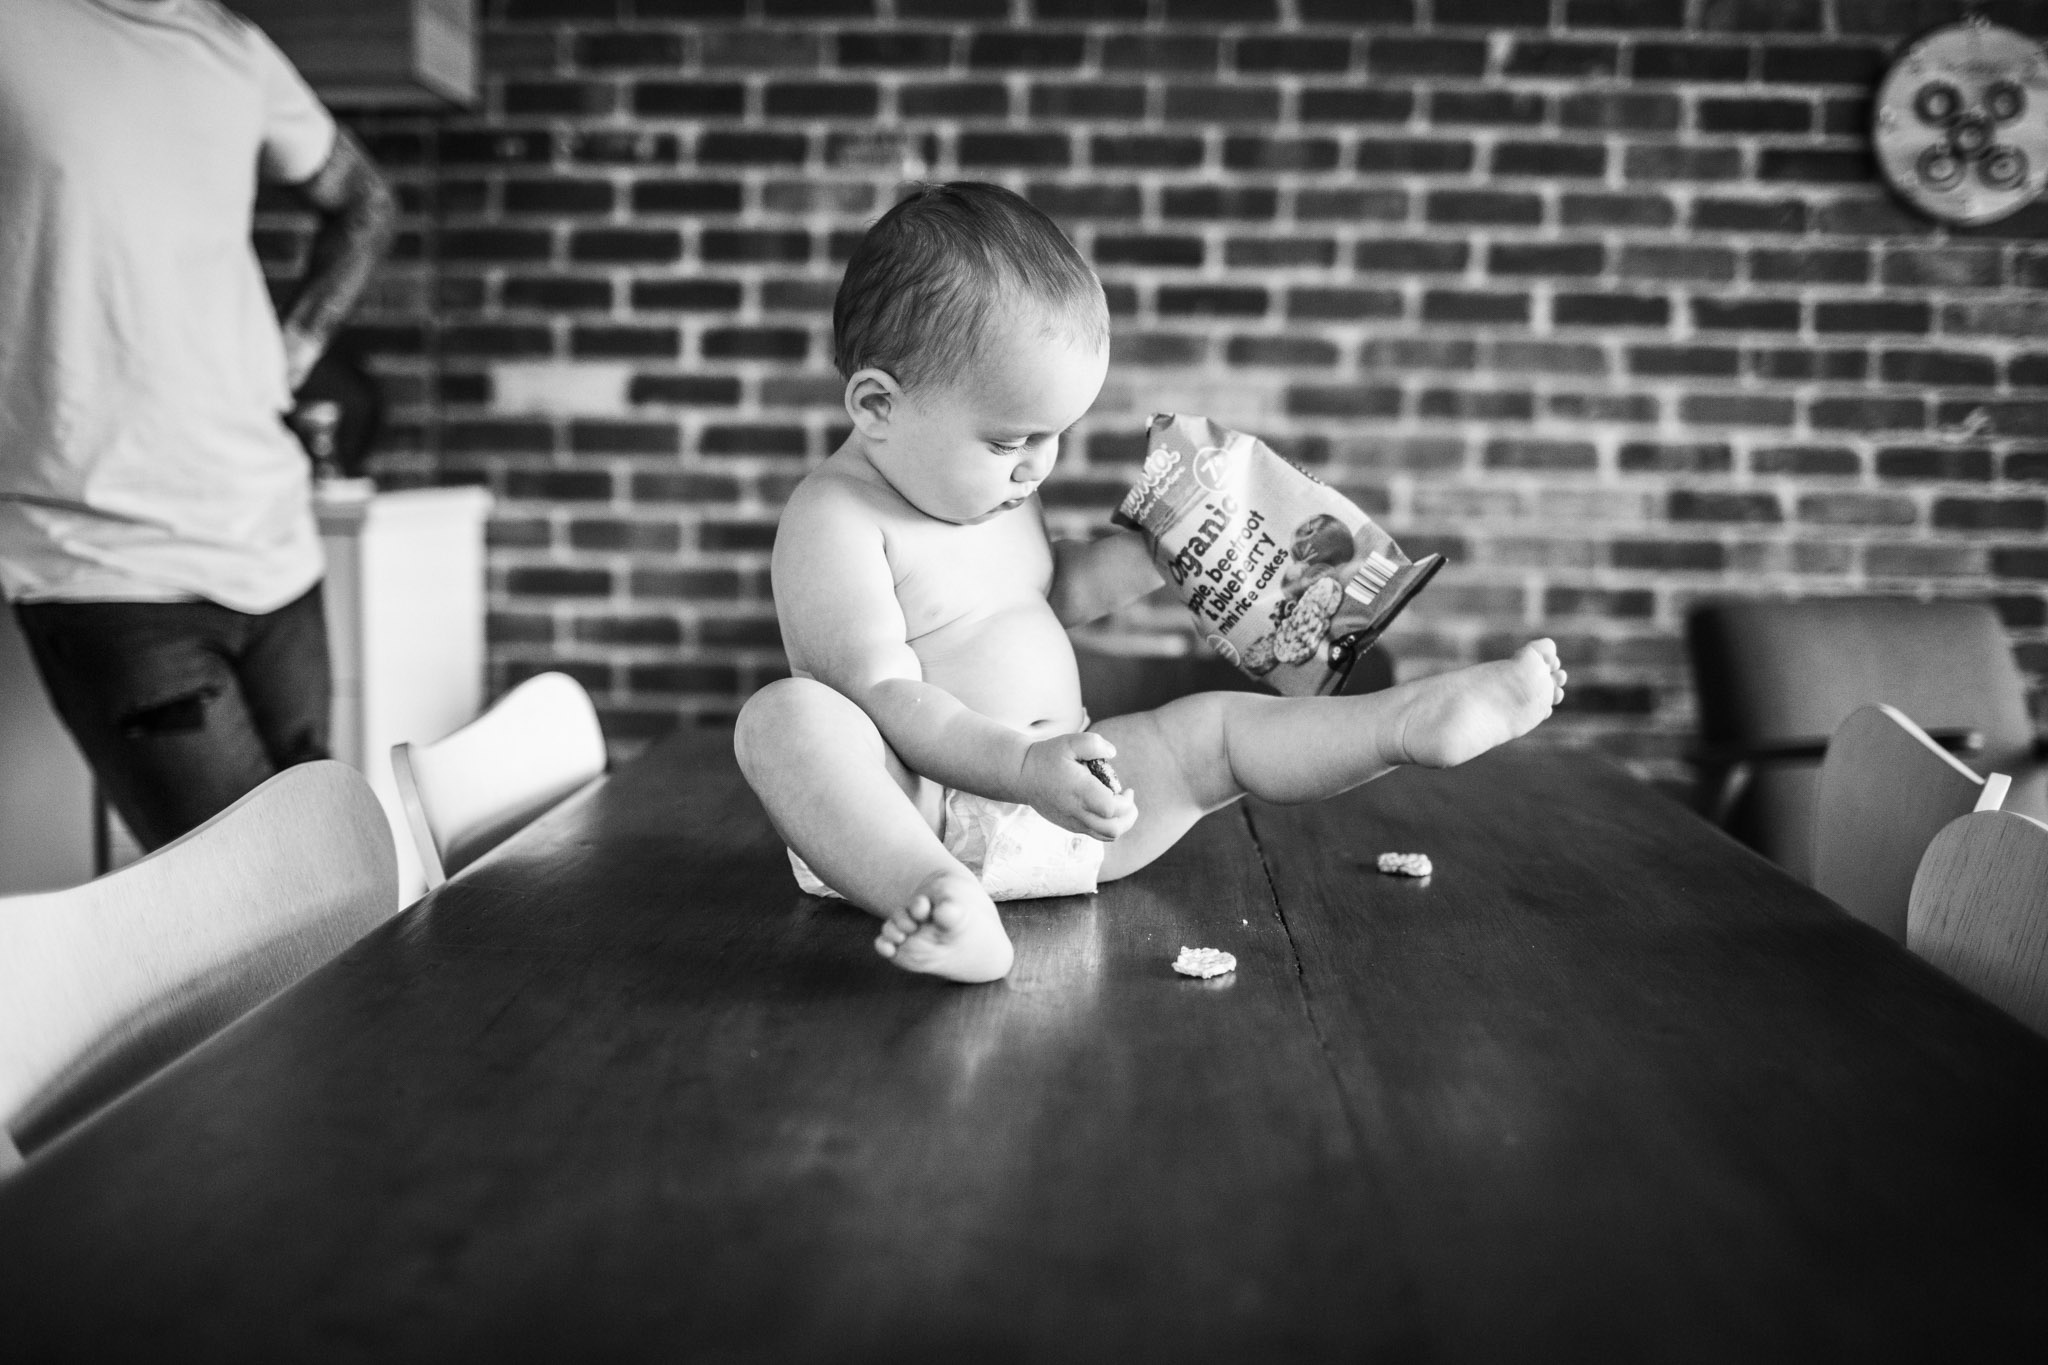 baby-on-table-with-crisps (1 of 1).jpg